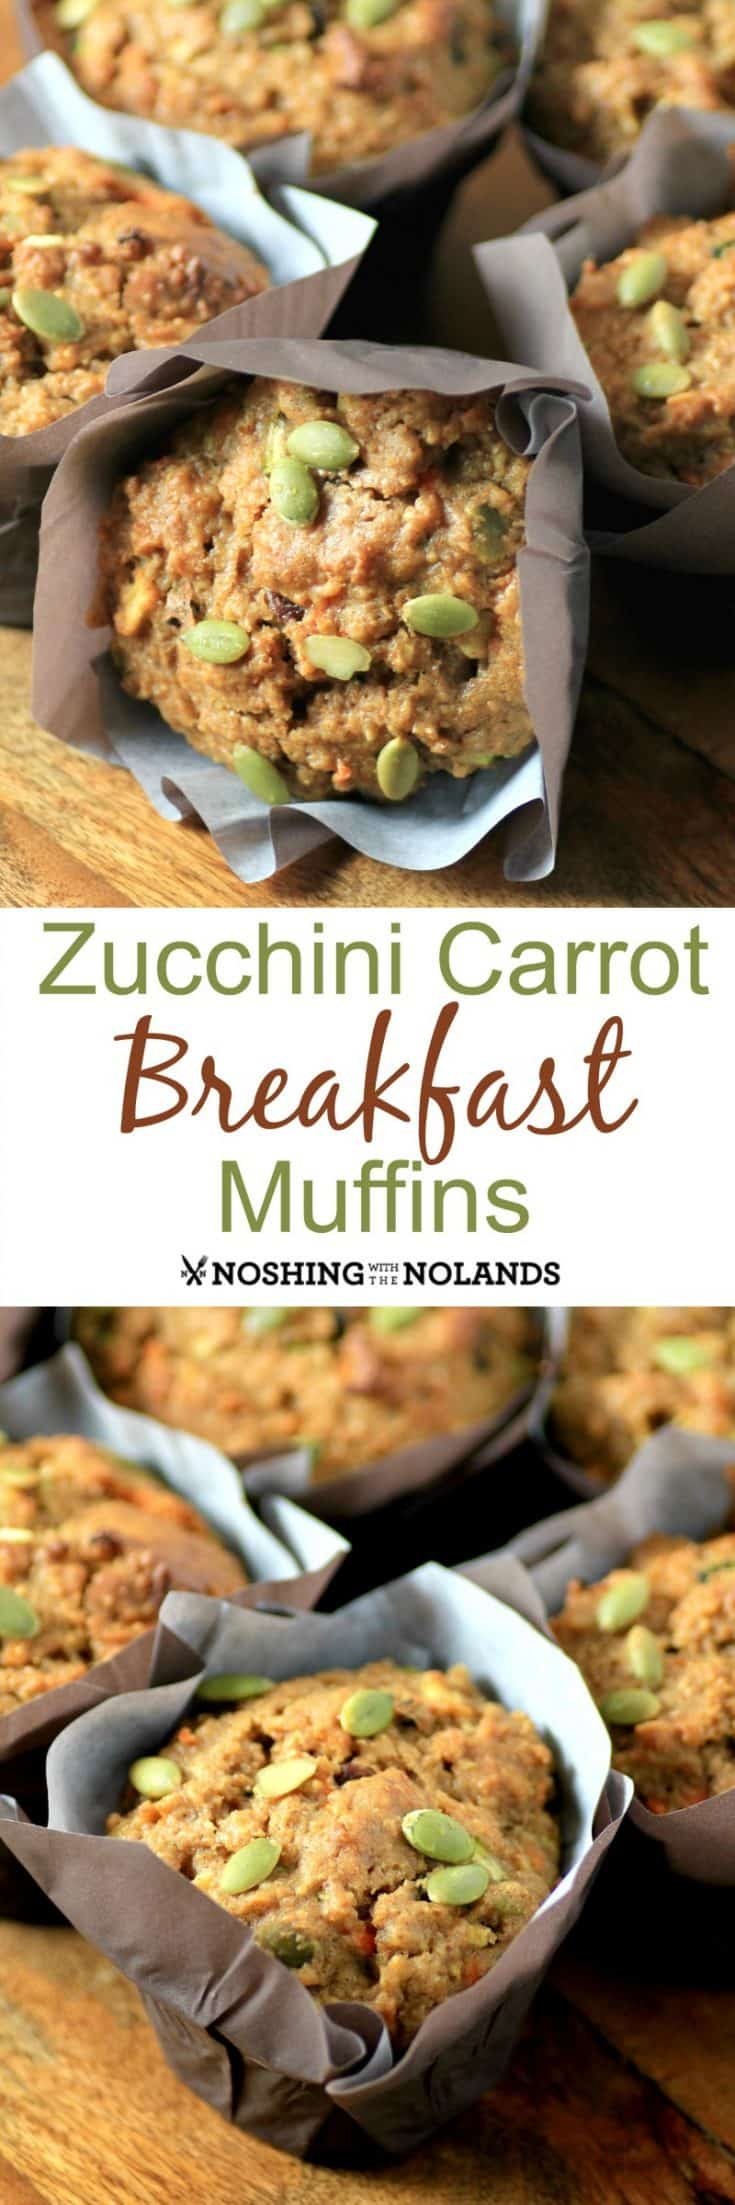 Zucchini Carrot Breakfast Muffins are a hearty delicious way to start your day!! They are packed full of healthy ingredients!! #zucchini #carrot #breakfast #muffins